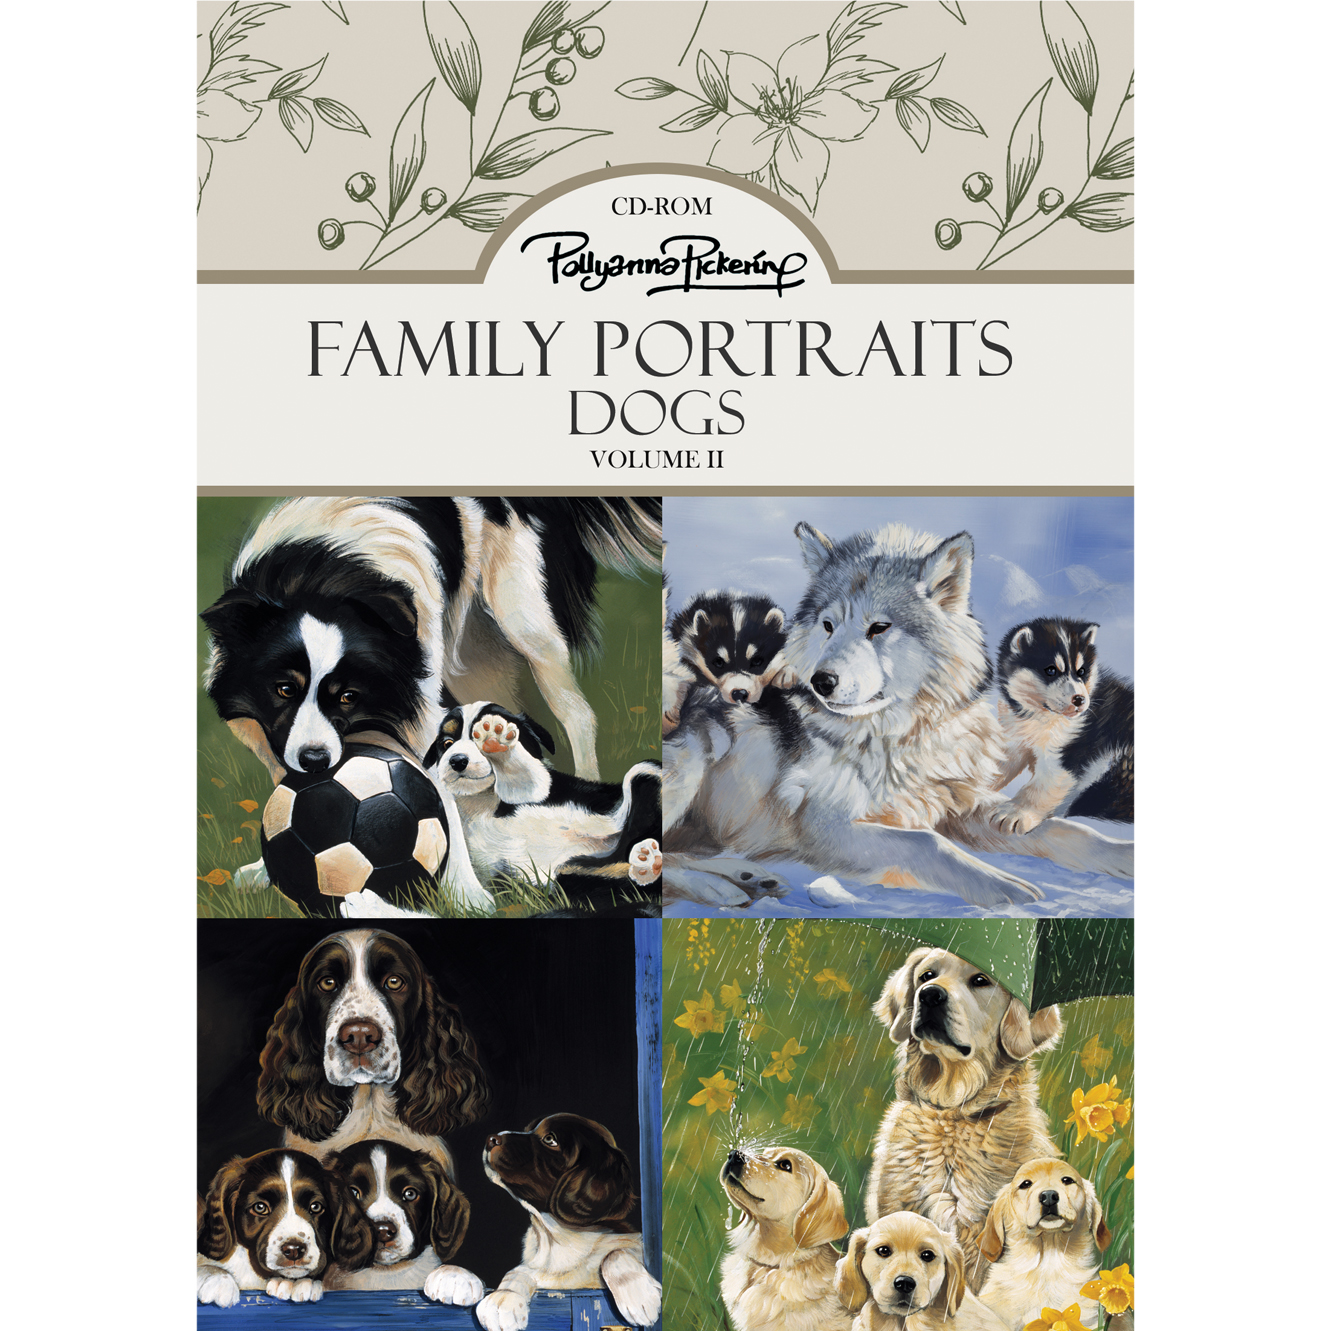 Pollyanna Pickering Family Portraits – Dogs Vol. II CD ROM